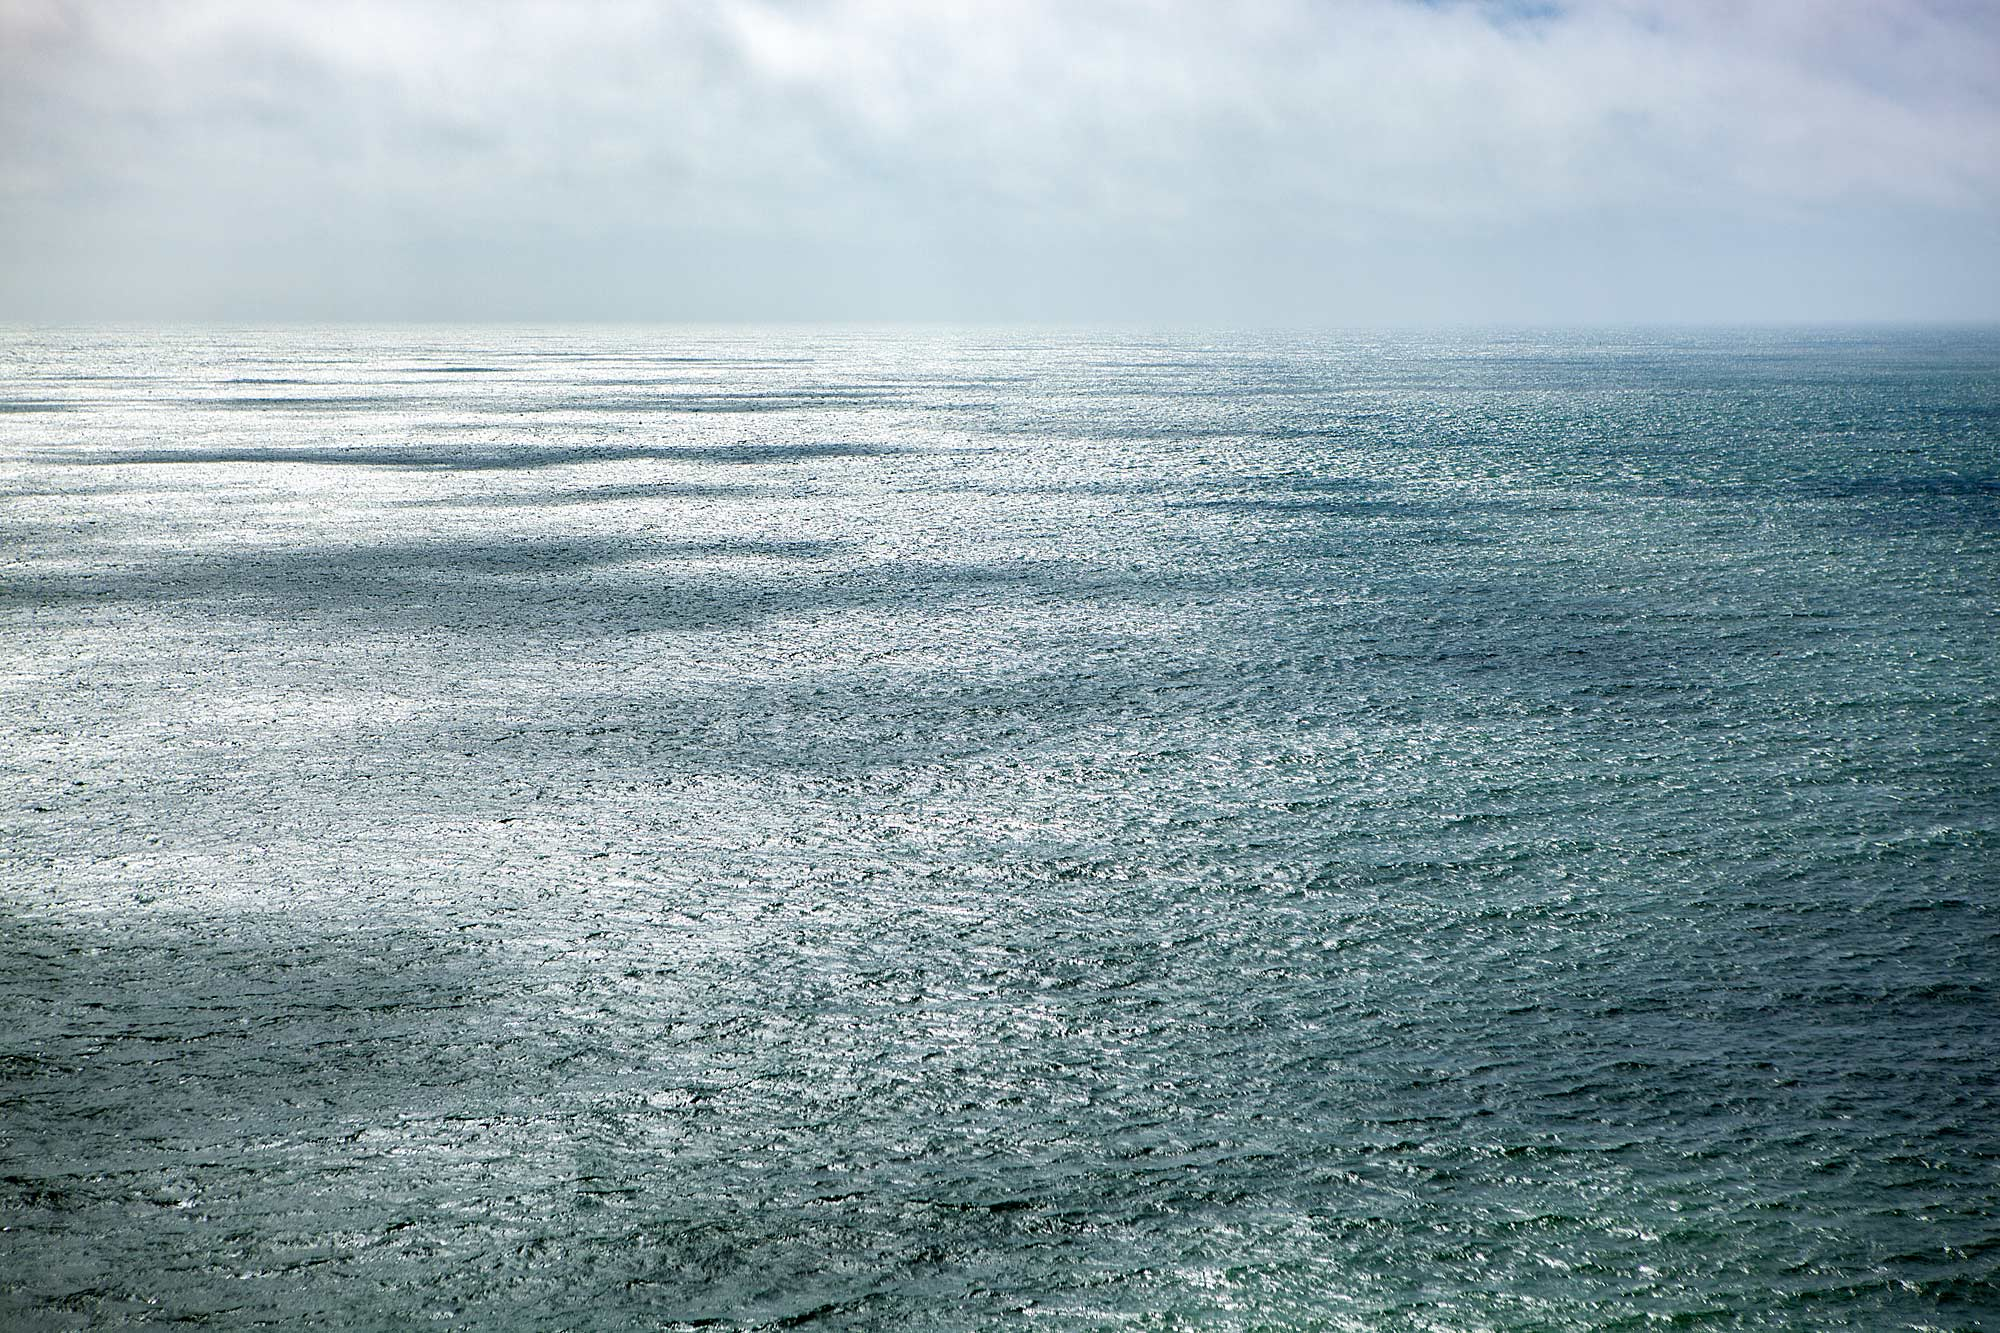 Pacific Ocean seascape